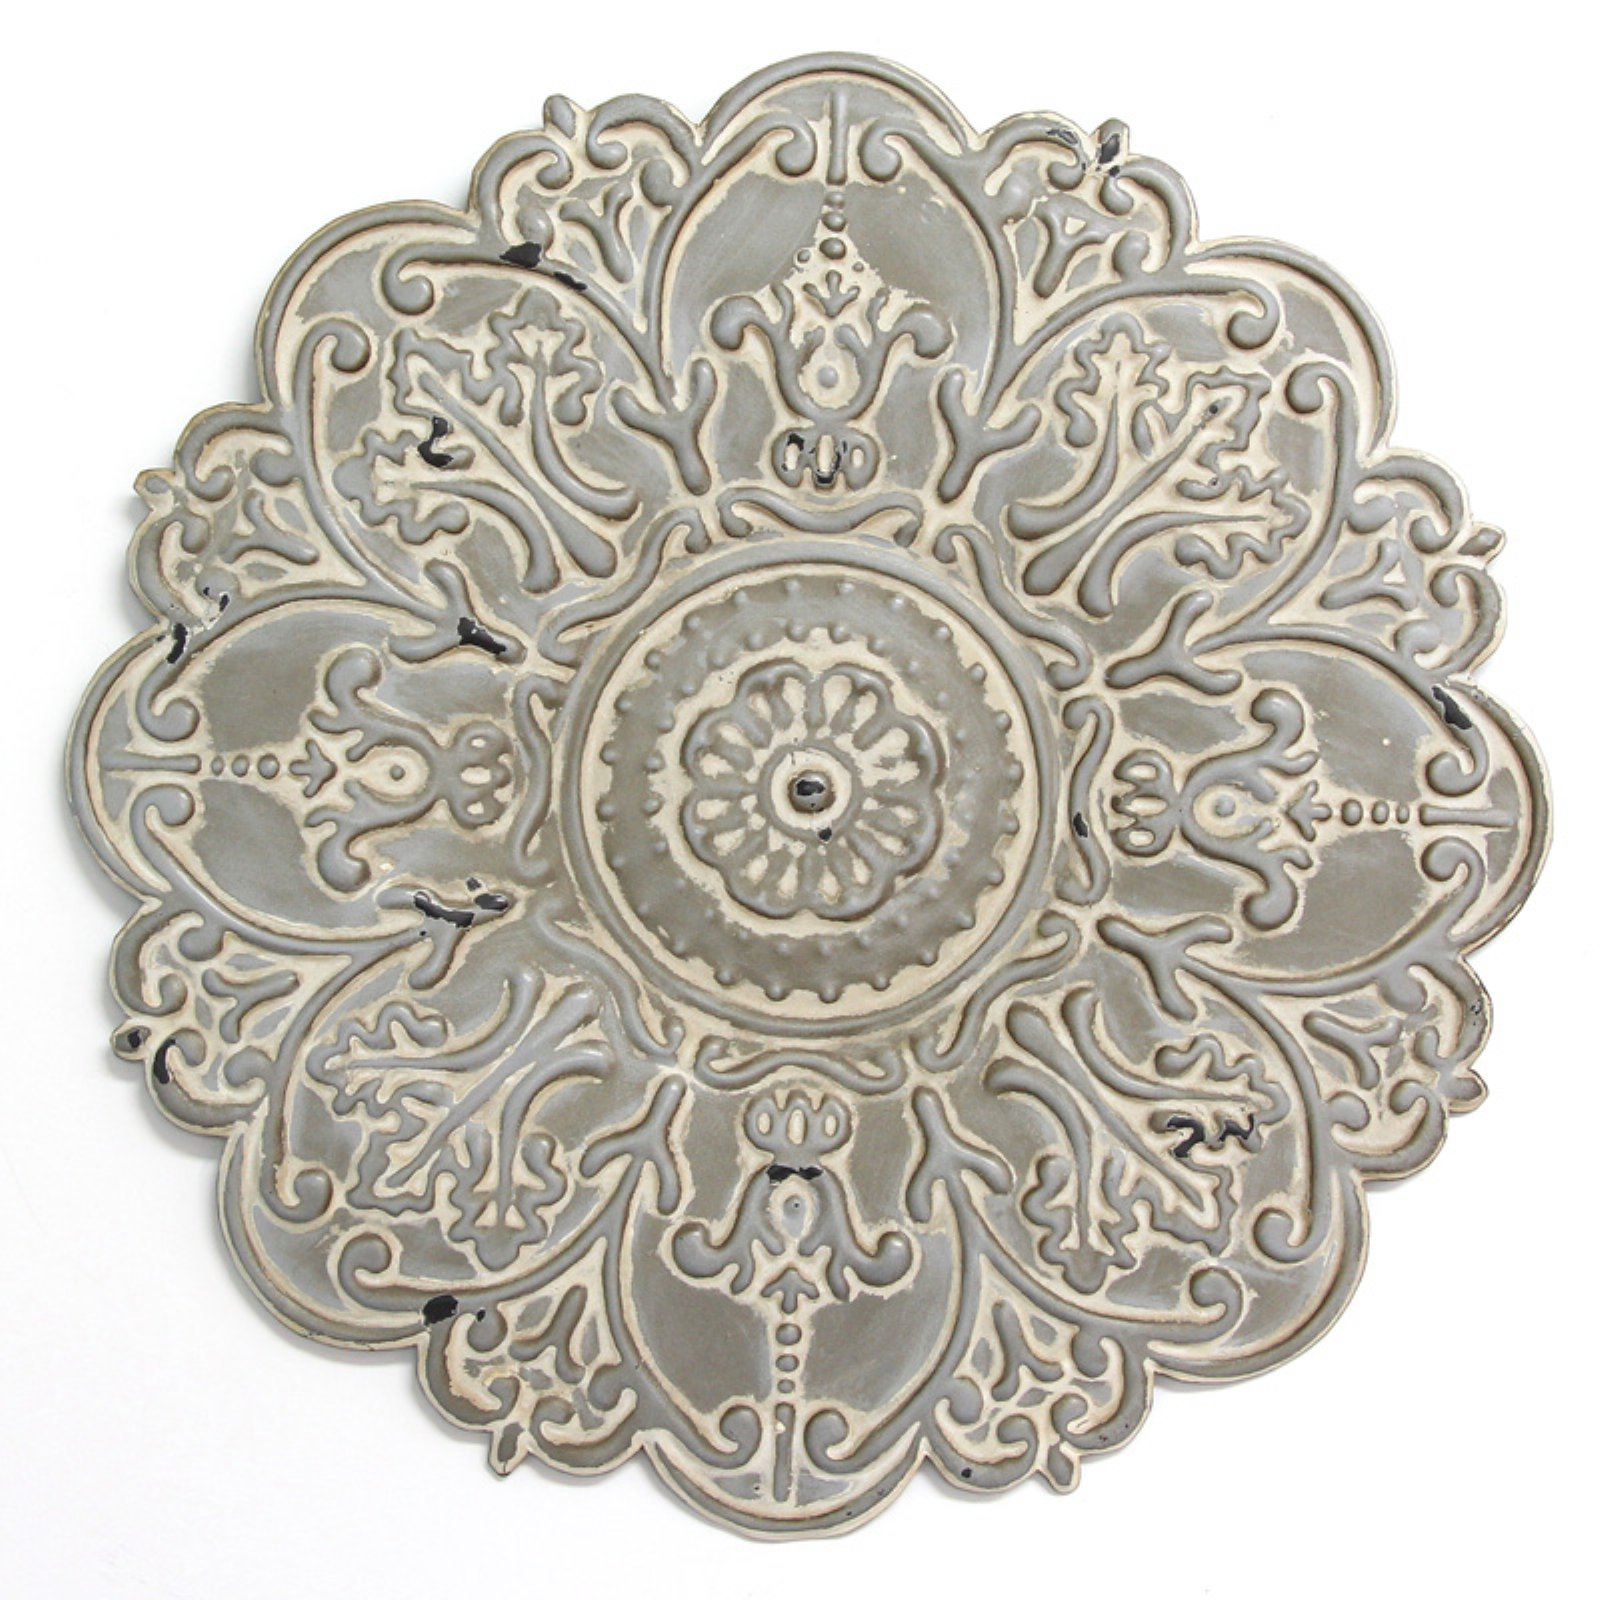 Stratton Home Decor Embossed Floral Wall Decor Blue In 2019 Regarding European Medallion Wall Decor (View 5 of 30)